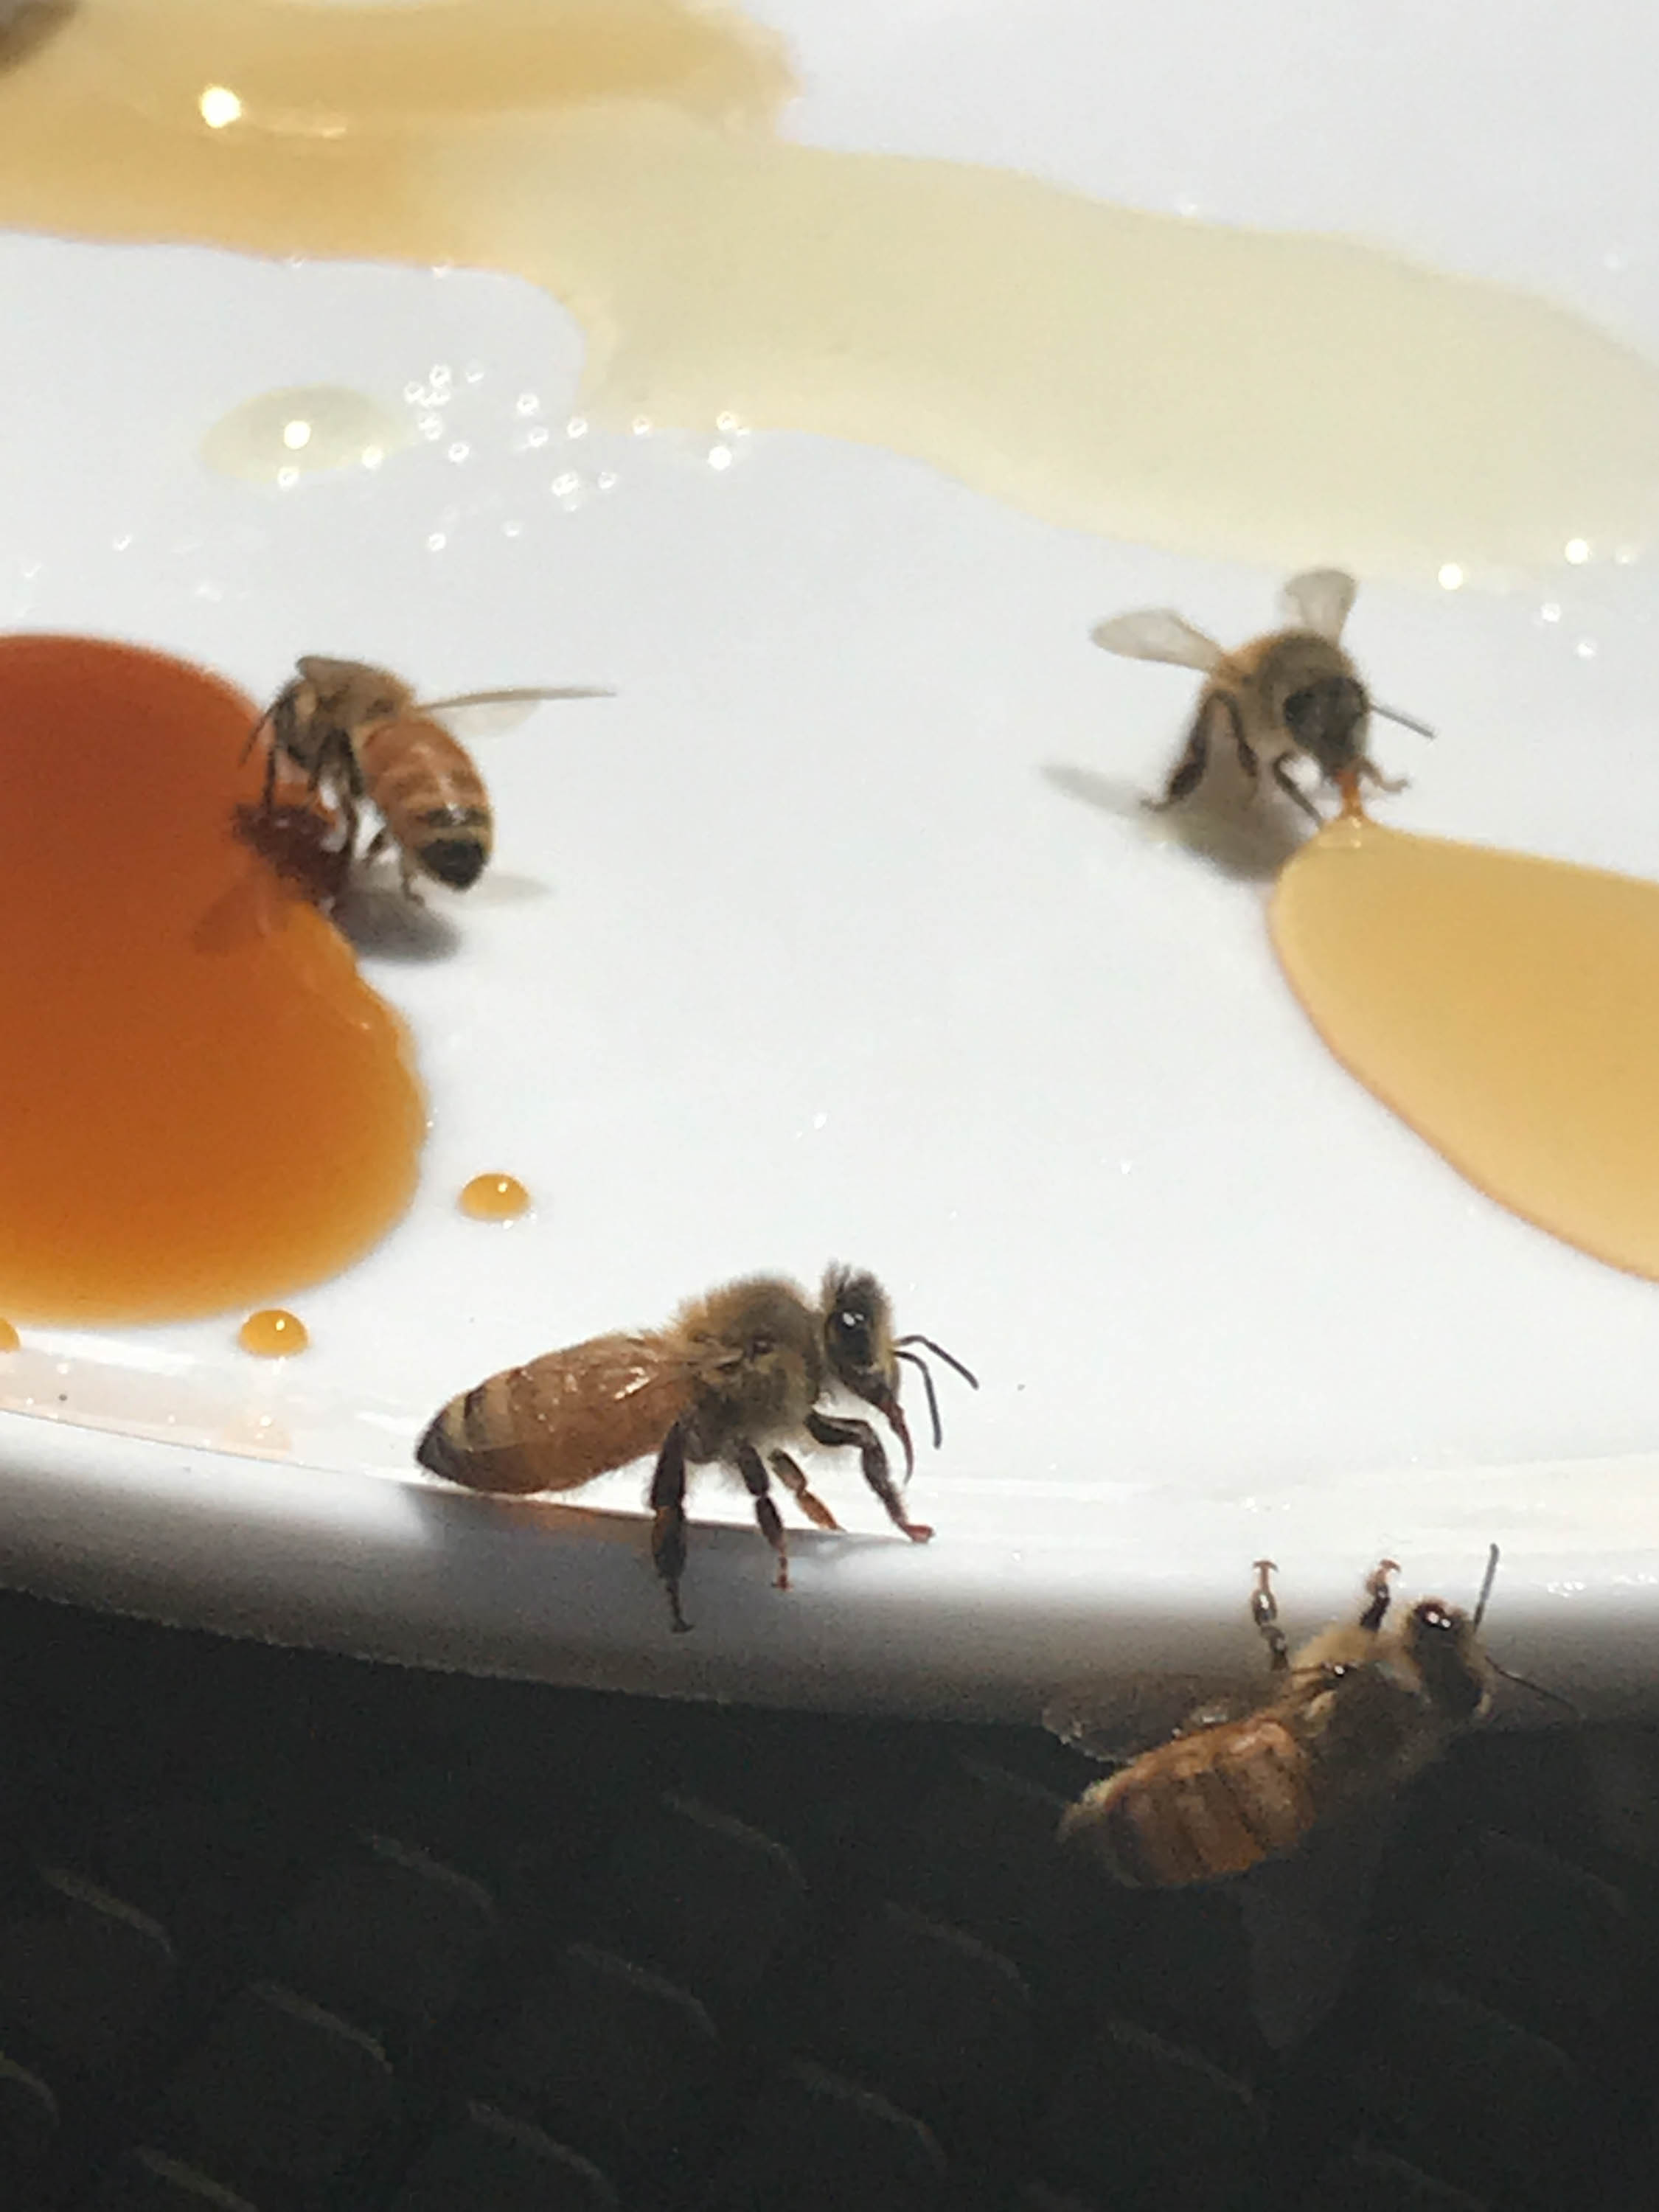 Heather, our crew and the bees gather for a honey taste test. The clearest honey came from Heather's hive. <em>Shannon Henry Kleiber (TTBOOK)</em>